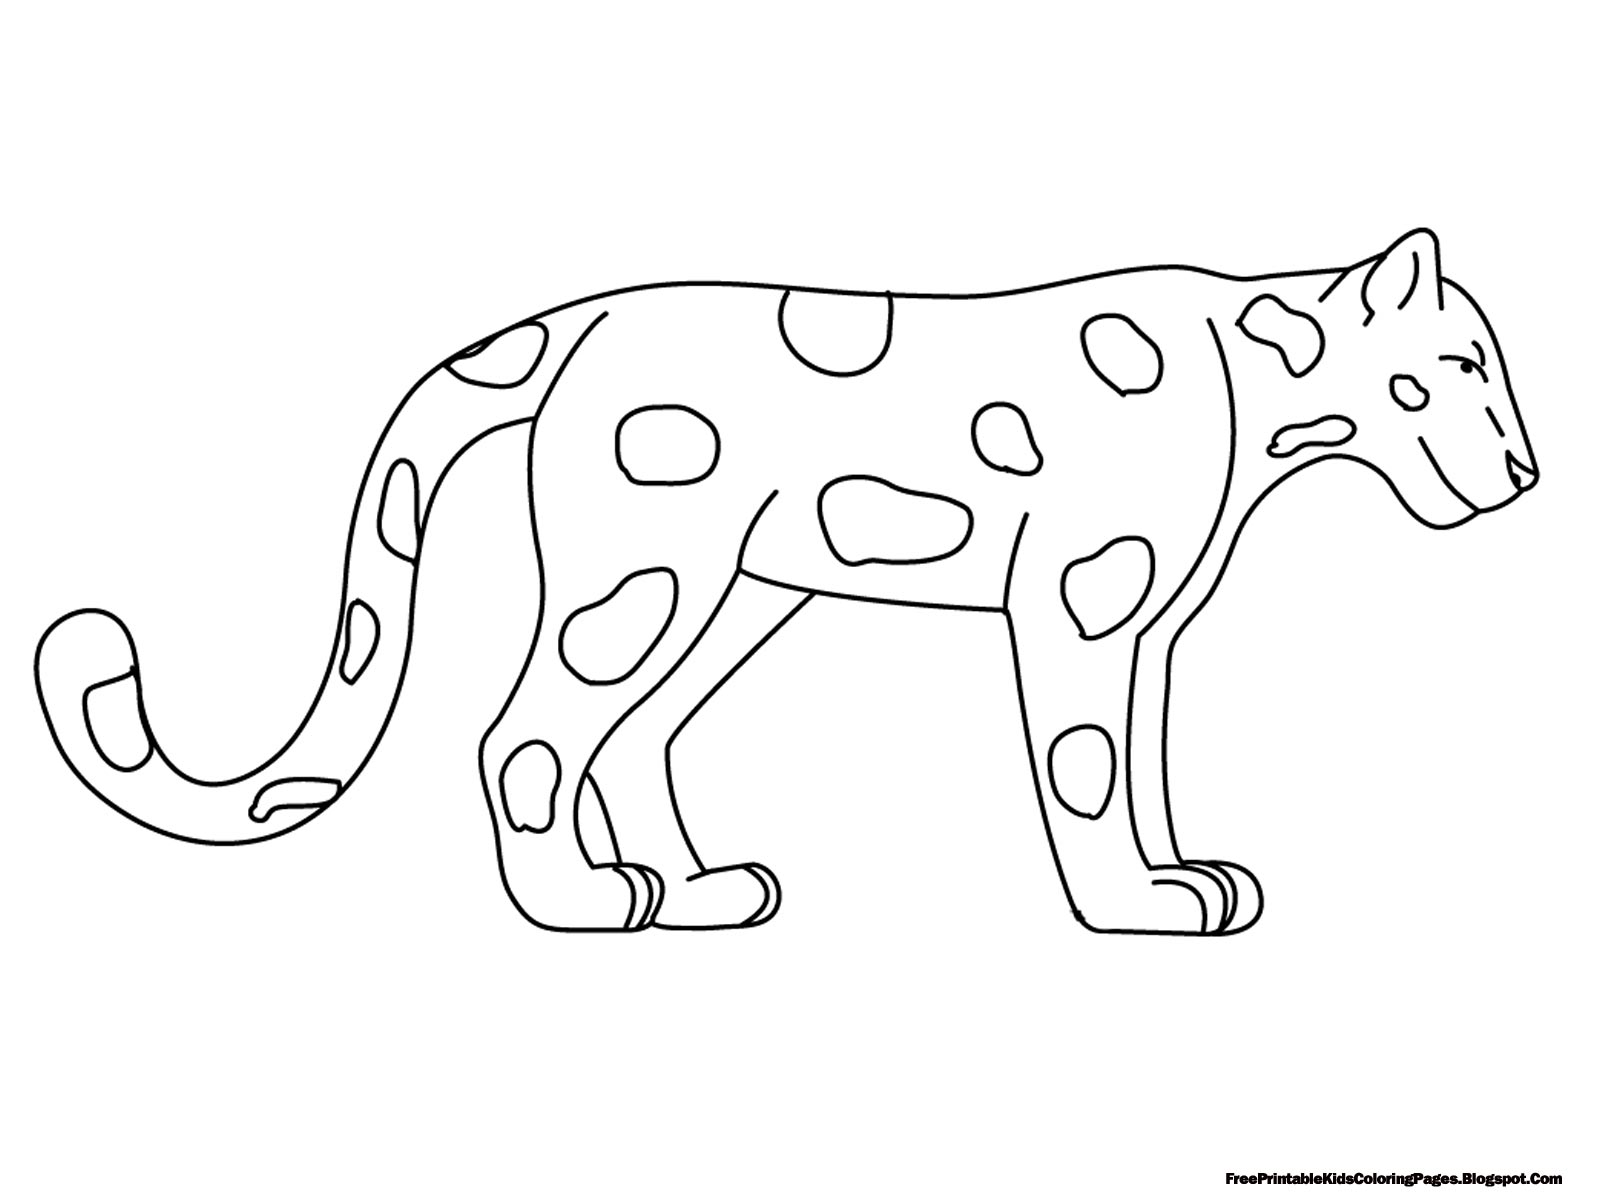 animal outlines to color image result for animal outlines animal outline color animal to outlines